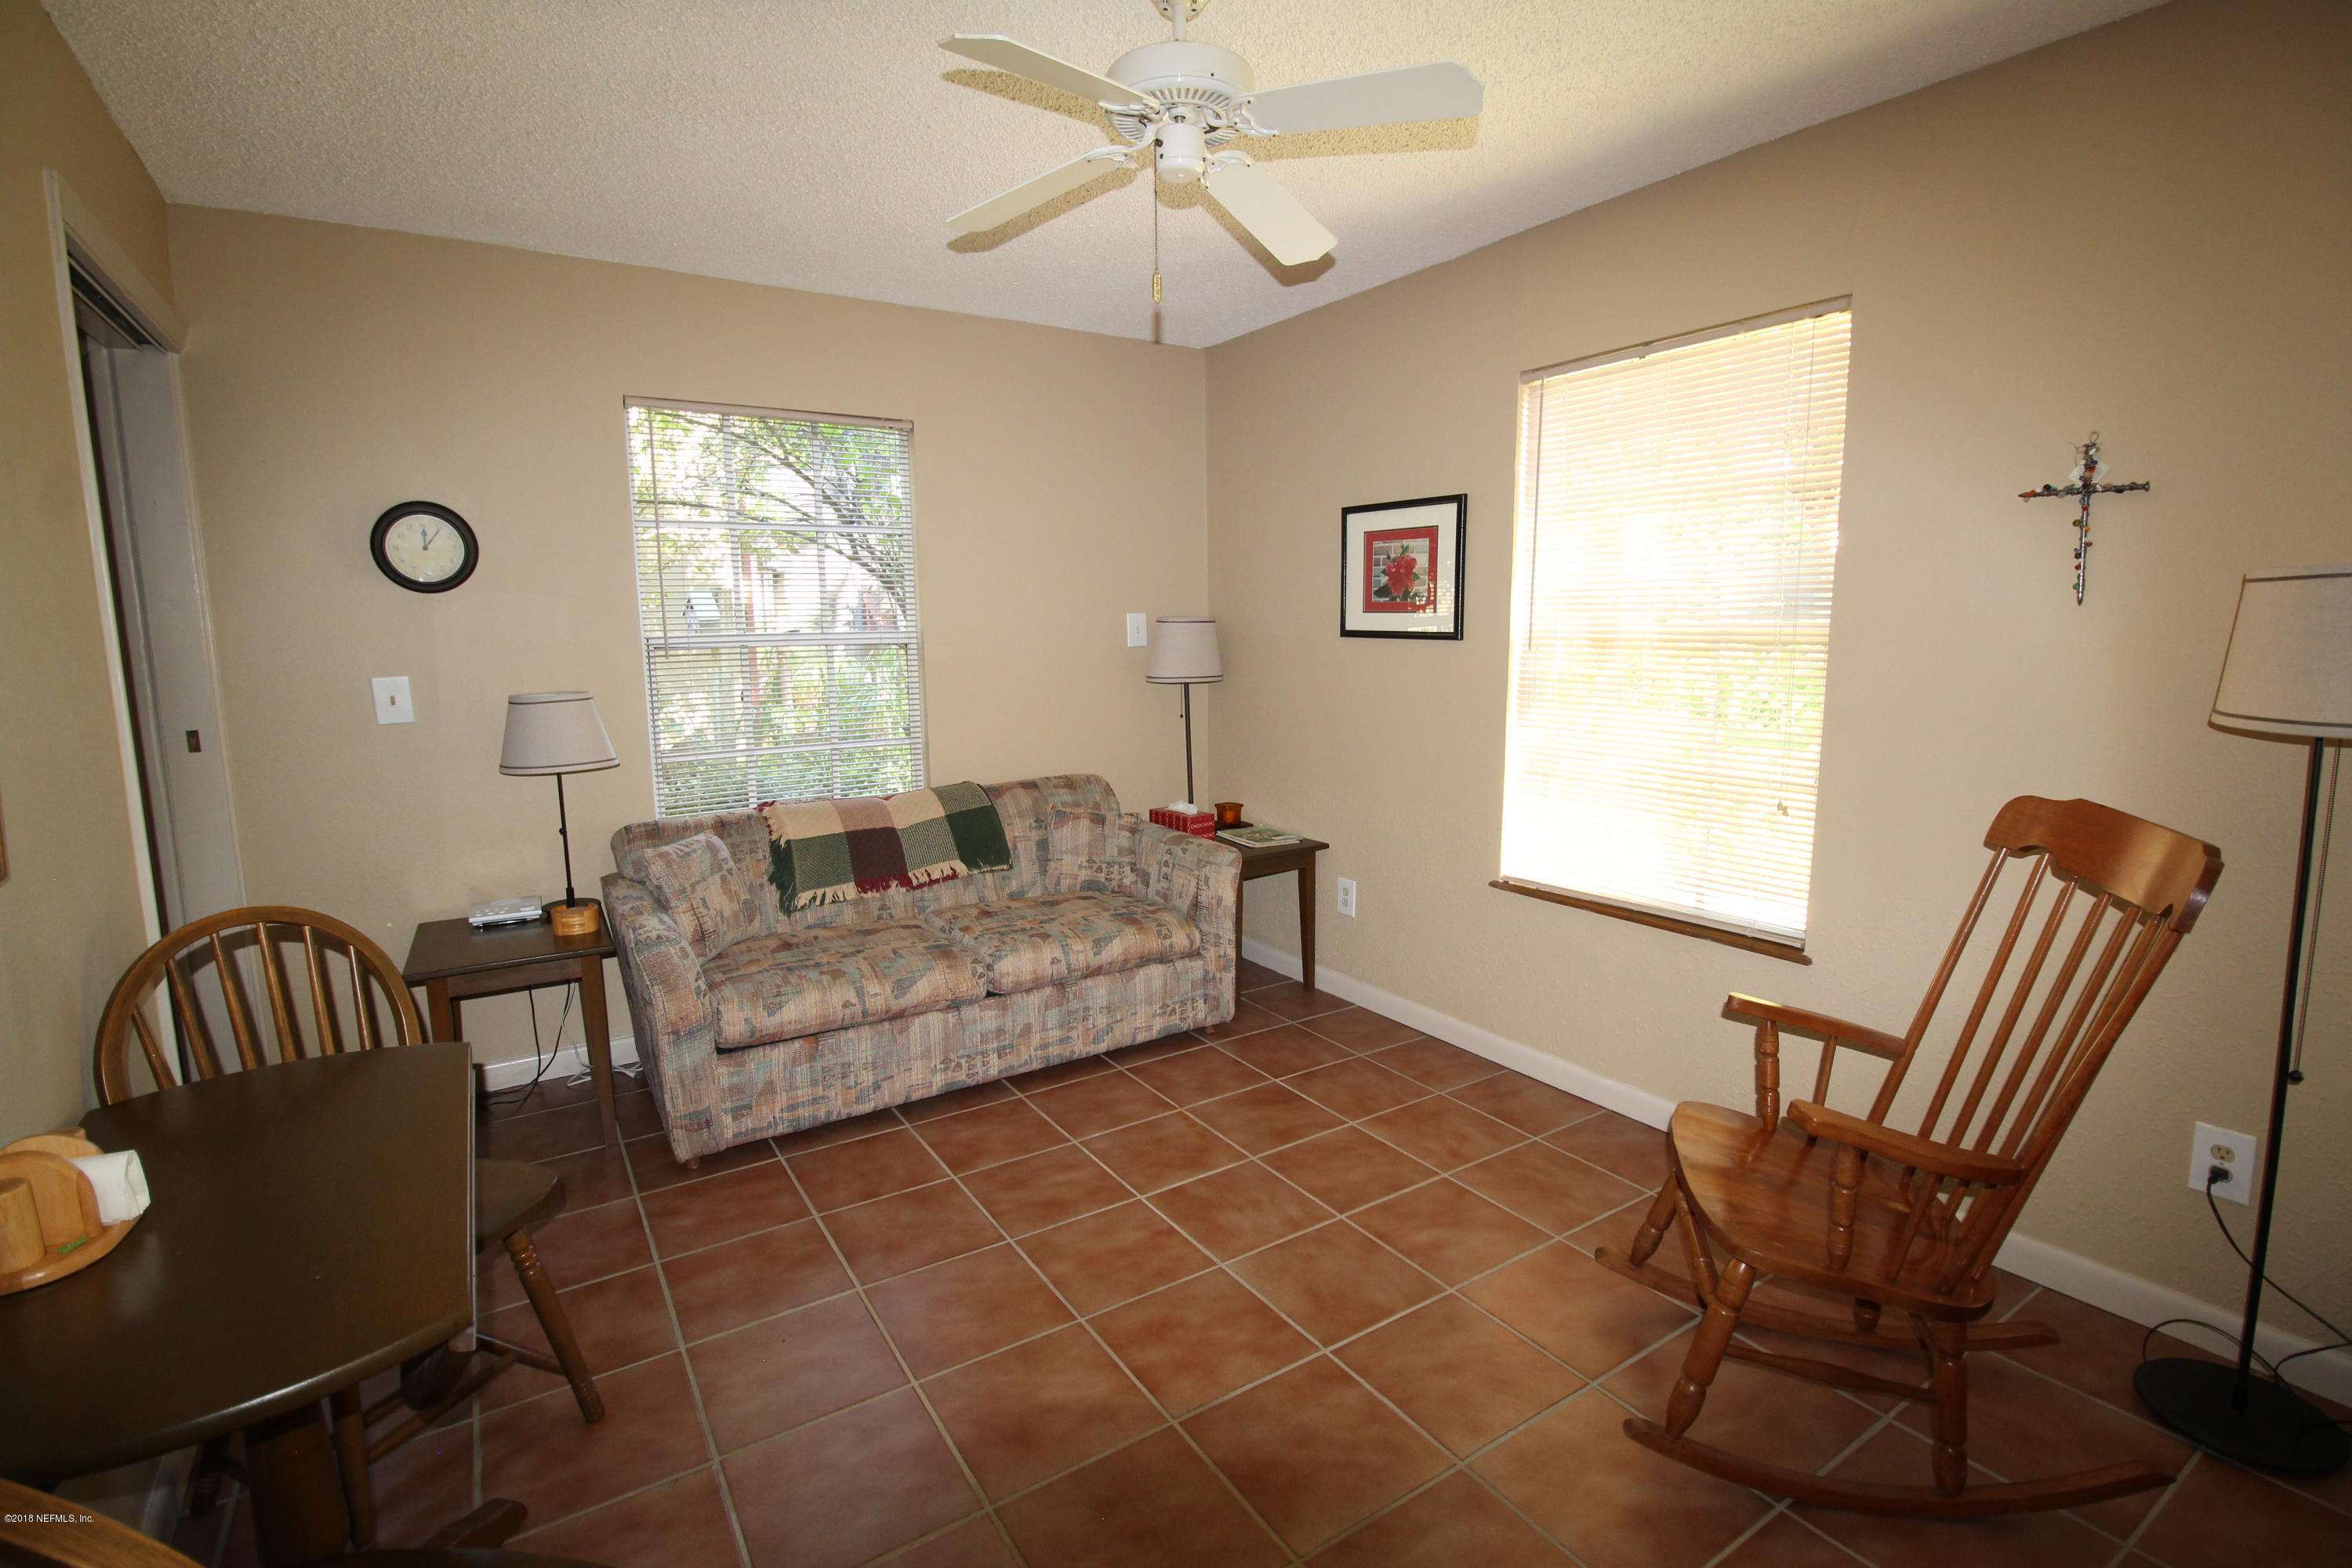 49 1/2 CARRERA, ST AUGUSTINE, FLORIDA 32084, 4 Bedrooms Bedrooms, ,4 BathroomsBathrooms,Residential - single family,For sale,CARRERA,964787